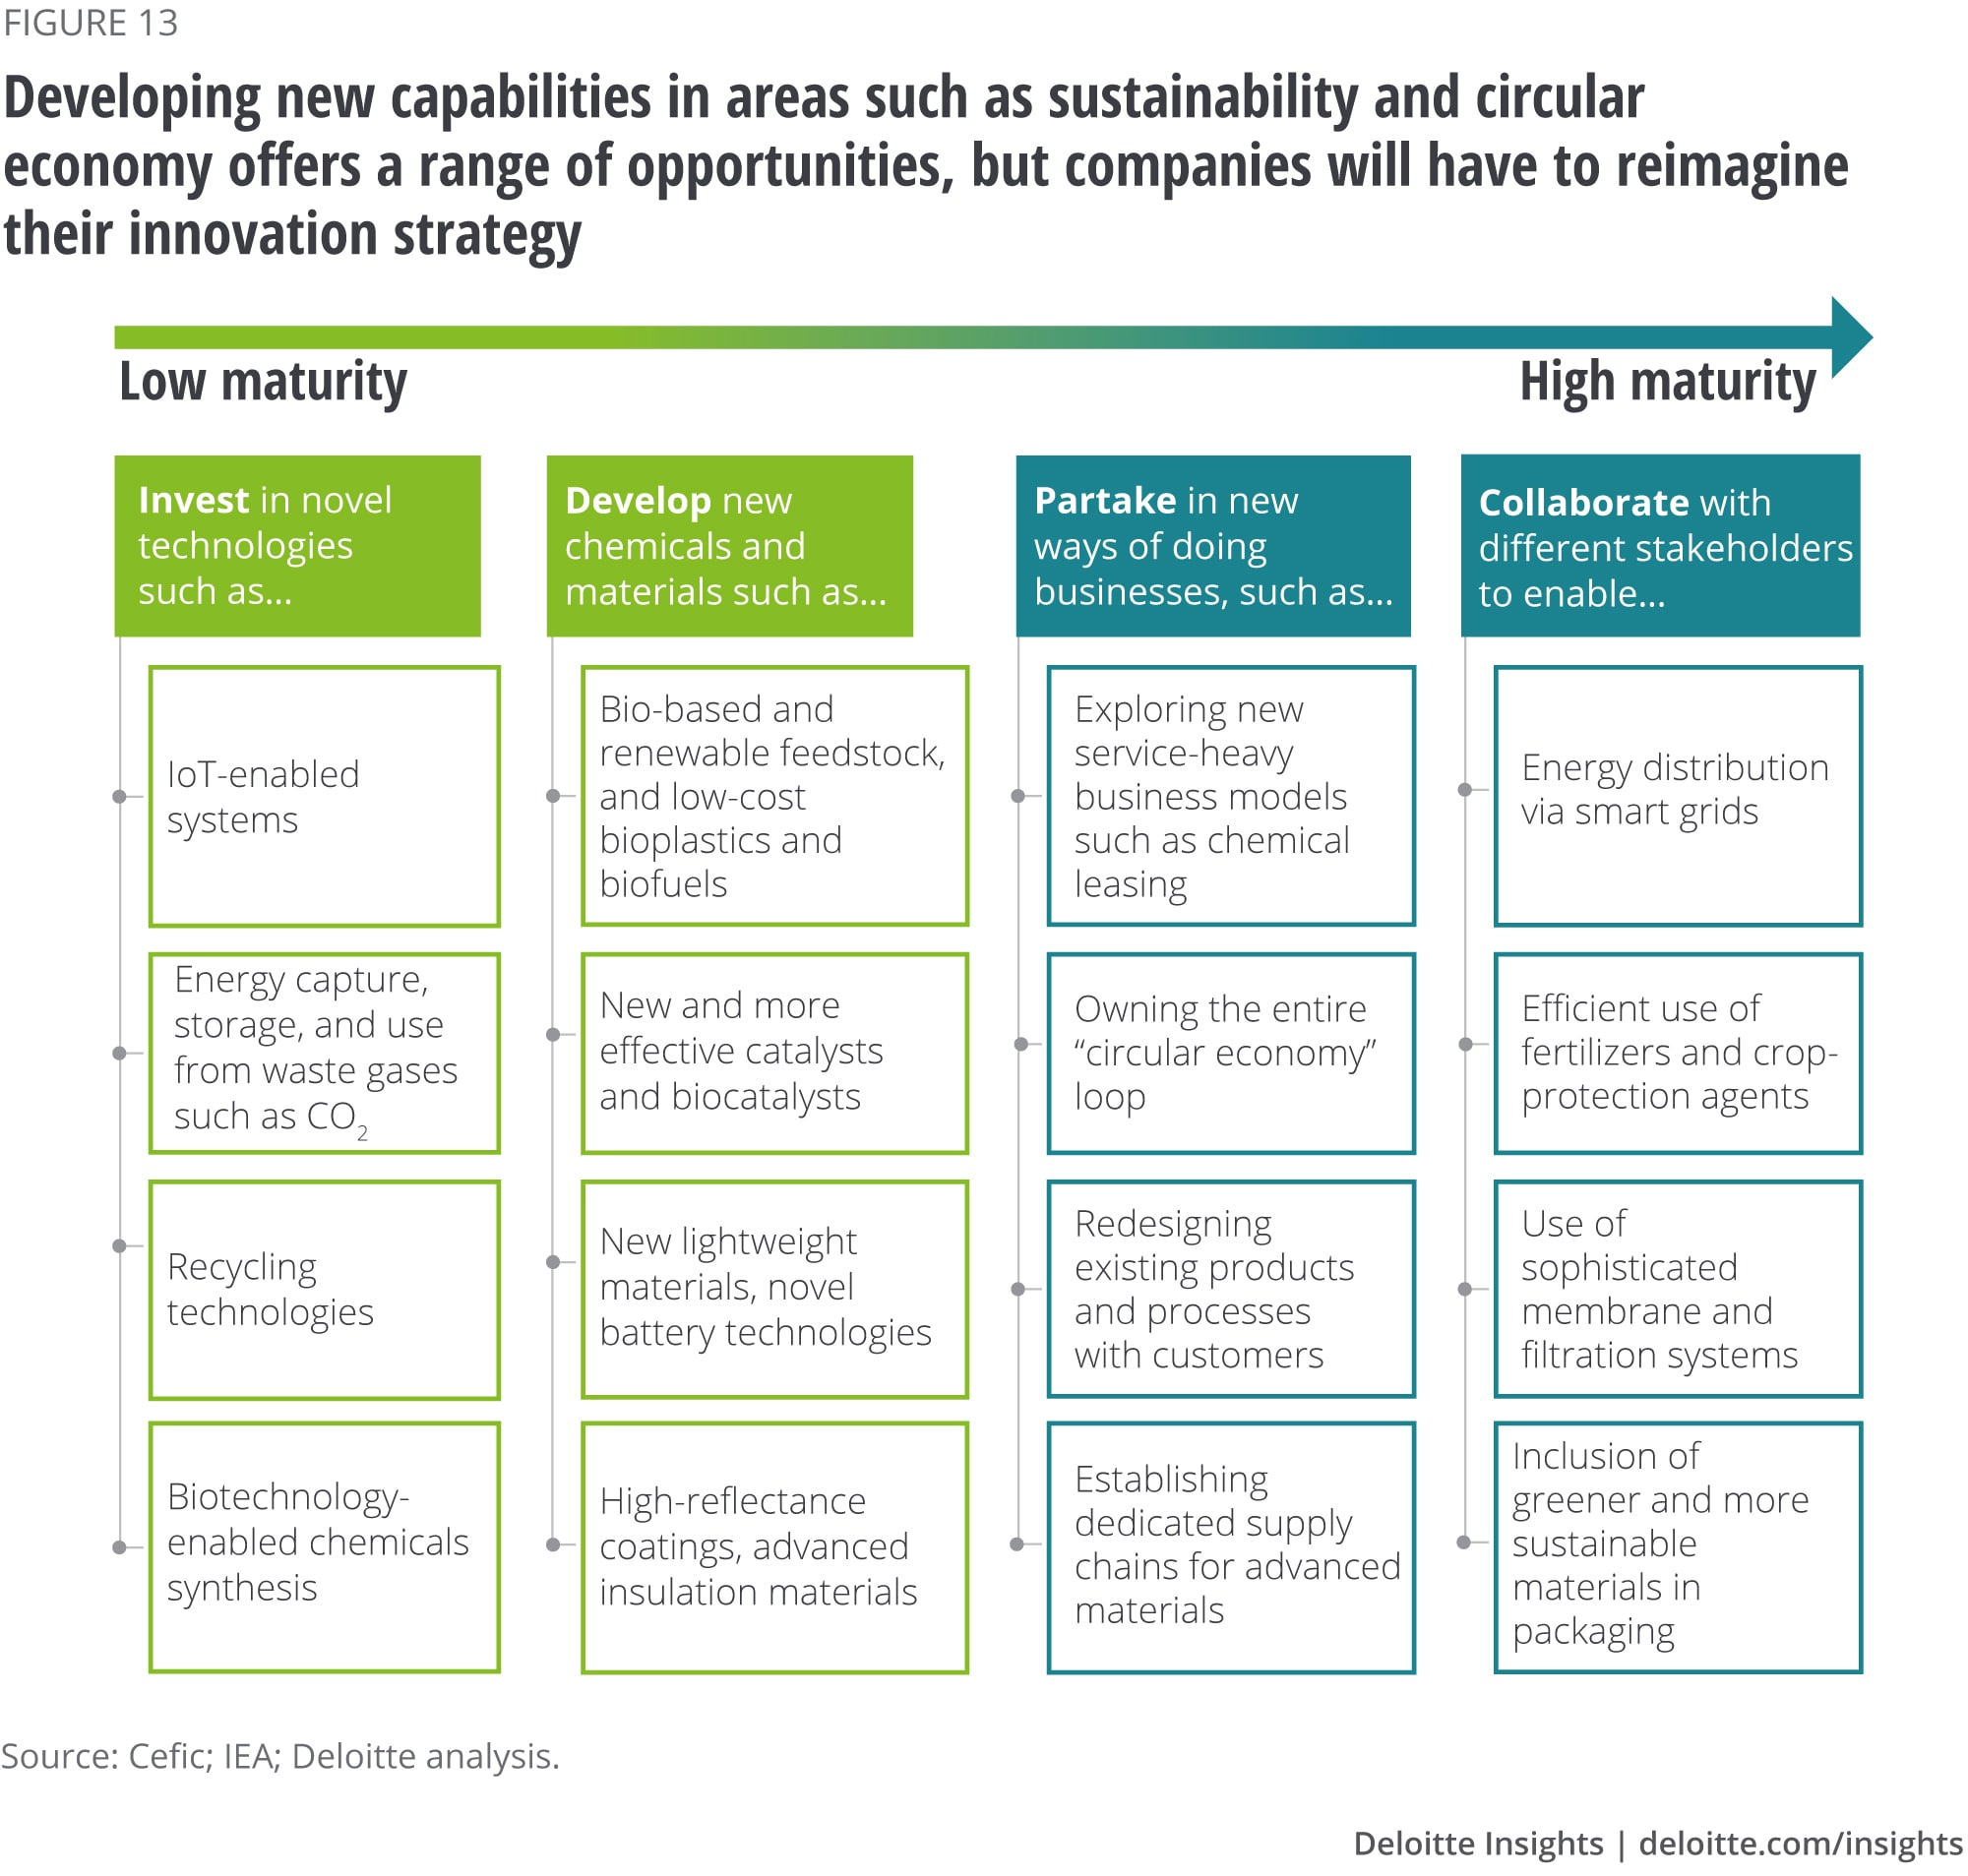 Developing new capabilities in areas such as sustainability and circular economy offers a range of opportunities, but companies will have to reimagine their innovation strategy